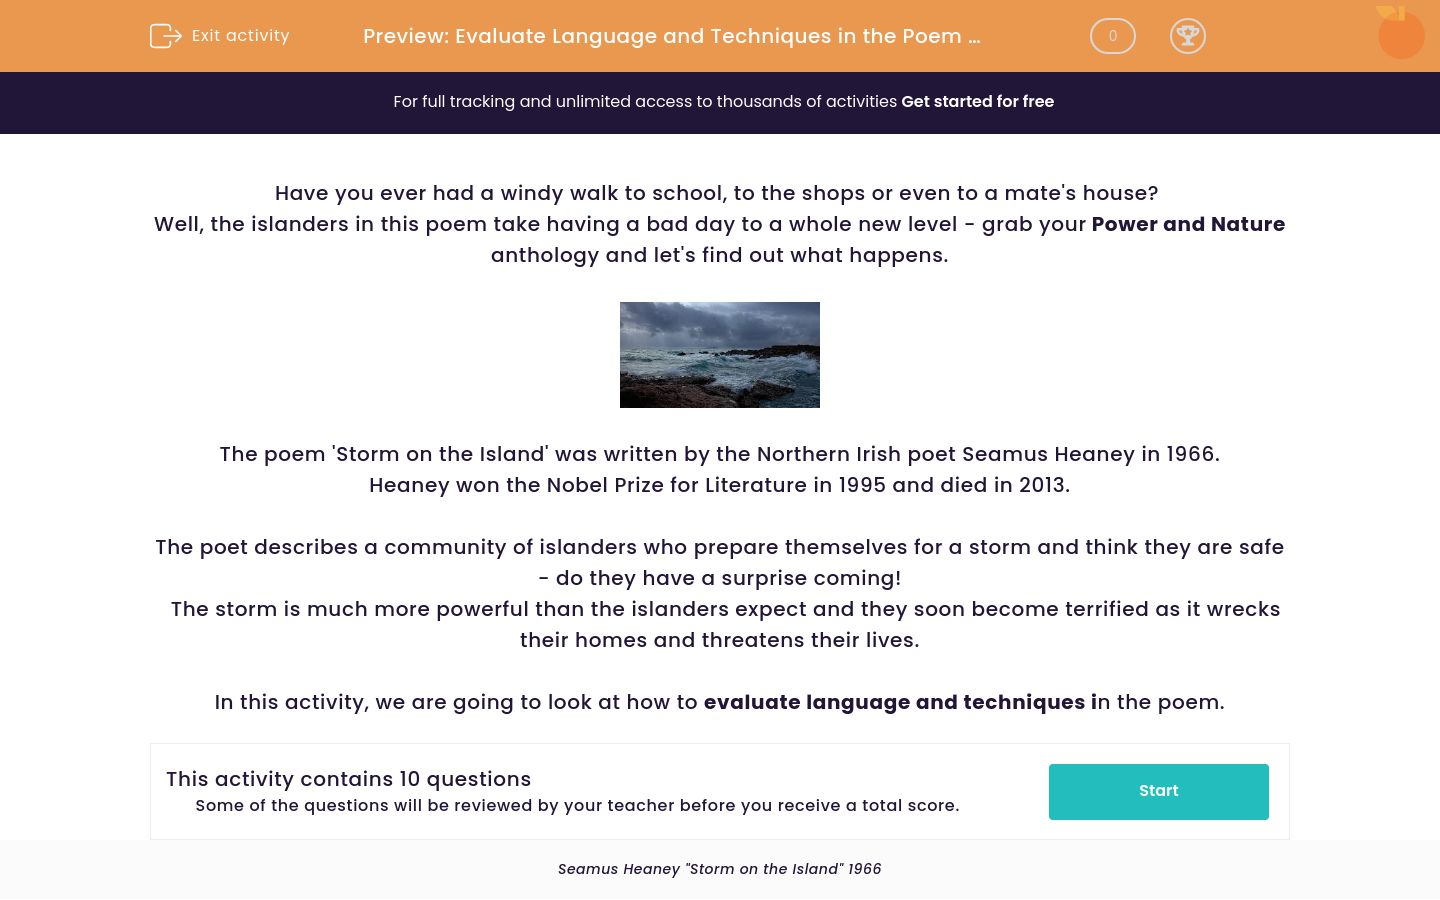 'Evaluate Language and Techniques in the Poem 'Storm on the Island' by Seamus Heaney' worksheet